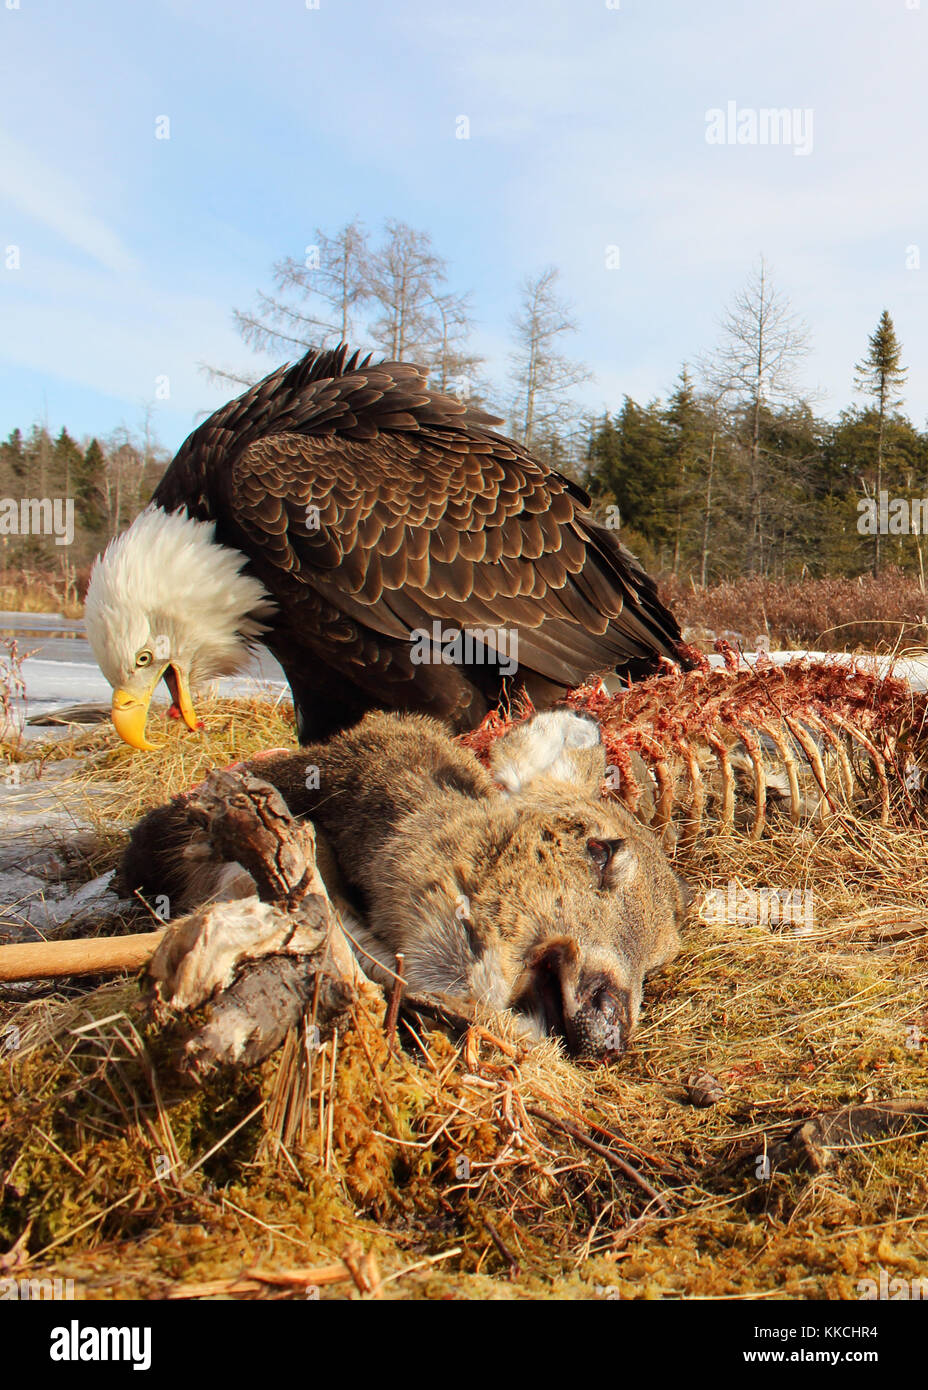 A Bald Eagle feeding on a White-tailed Deer. - Stock Image